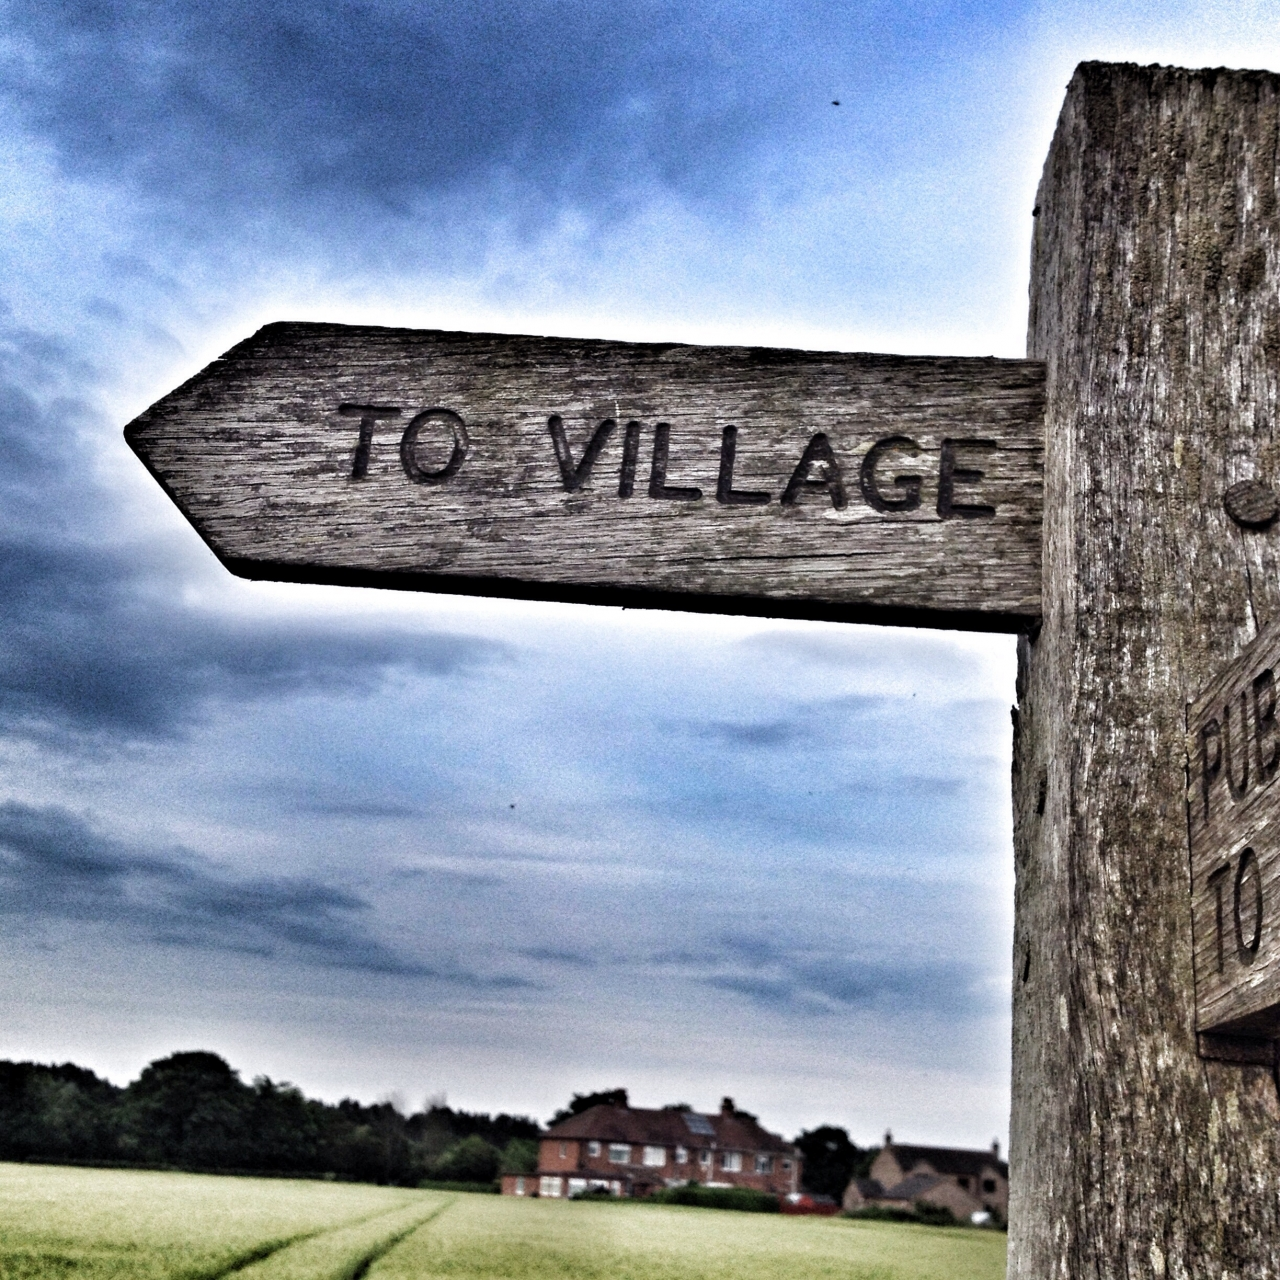 To Village, which one? Who knows? #21DaysWorld #Lincolnshire #Day3 #Sign